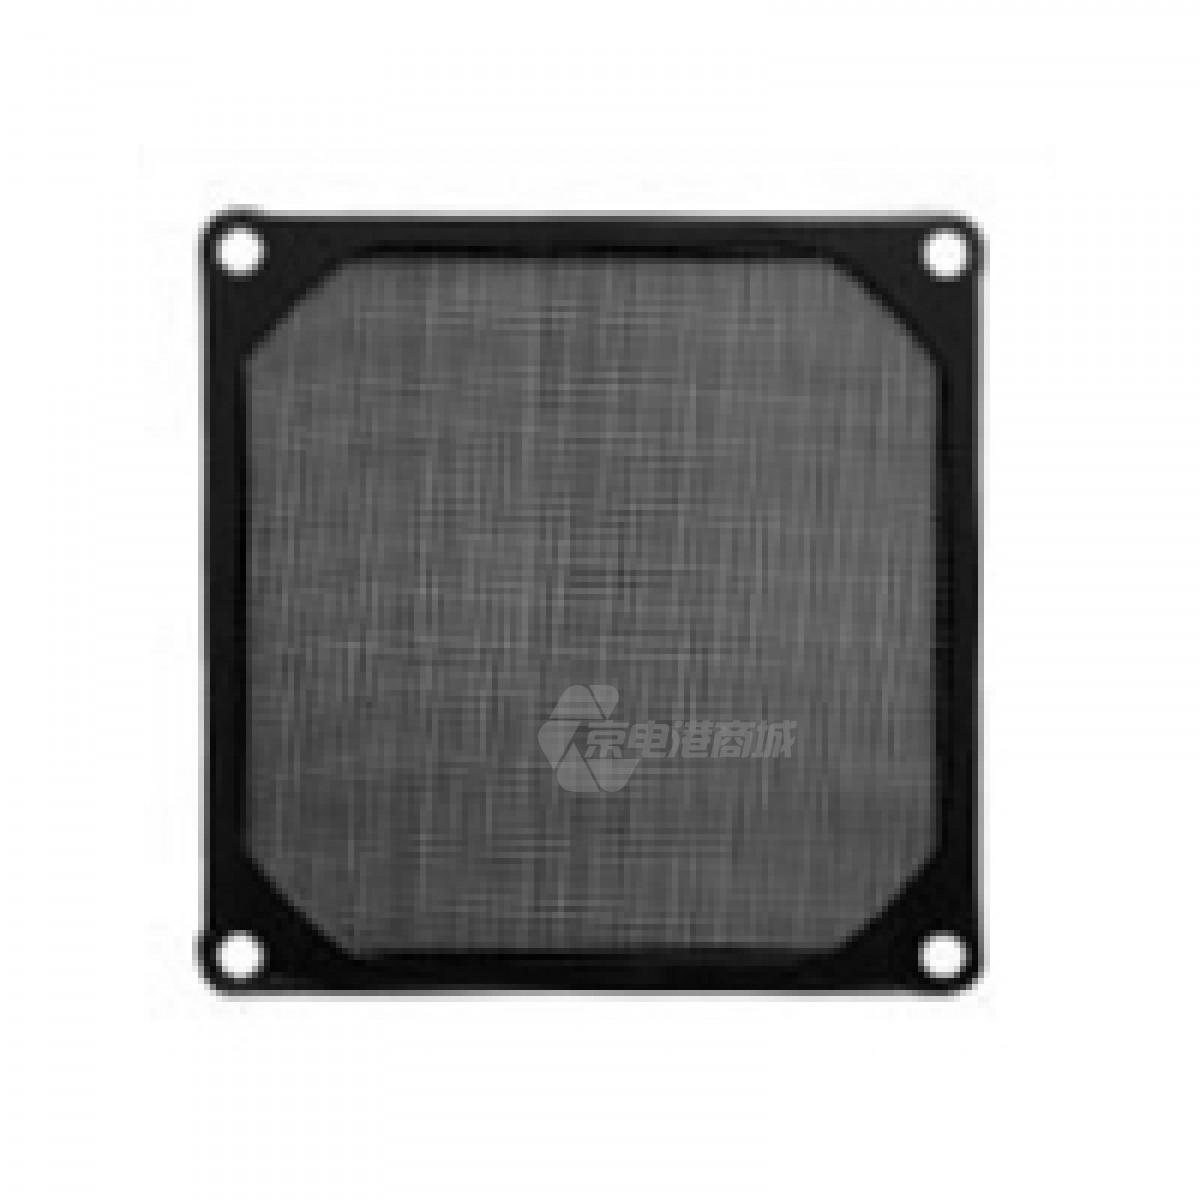 EVERCOOL FGF-80 / M / BK 80x80mm METAL FILTER